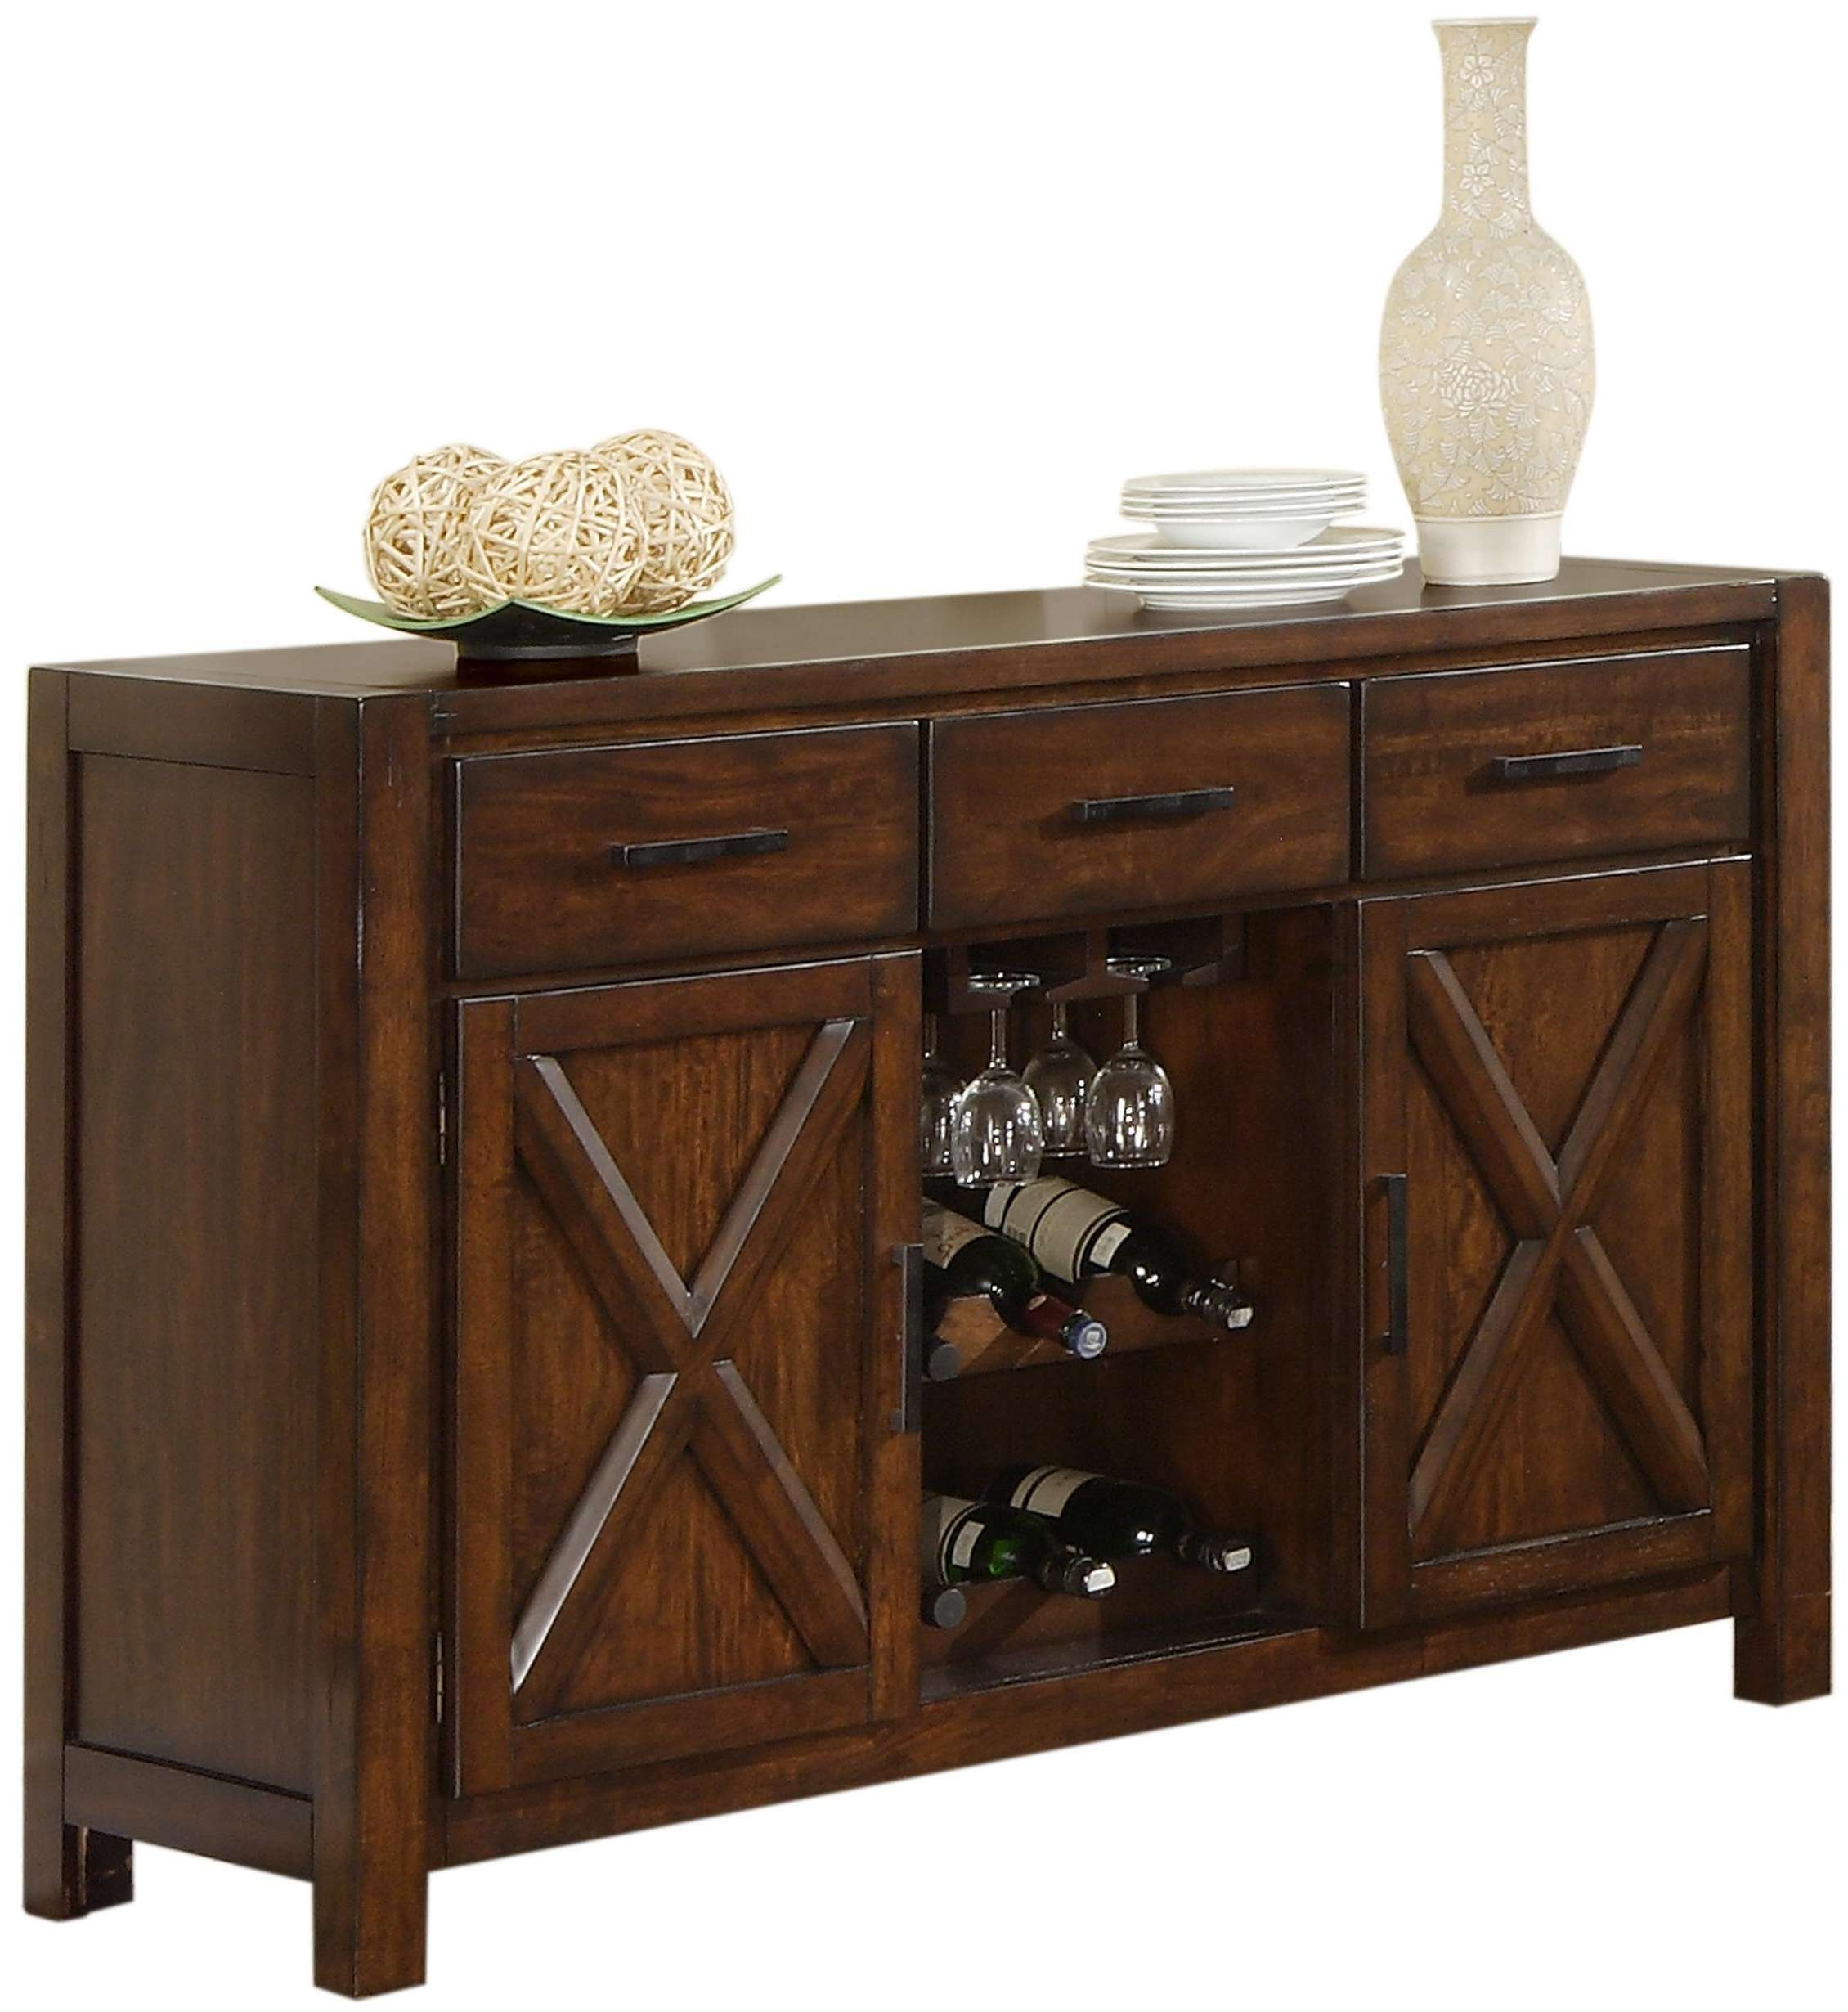 Holland House Lakeshore Dining Sideboard W/ Wine Rack And Stem Intended For Sideboards With Wine Rack (View 15 of 20)